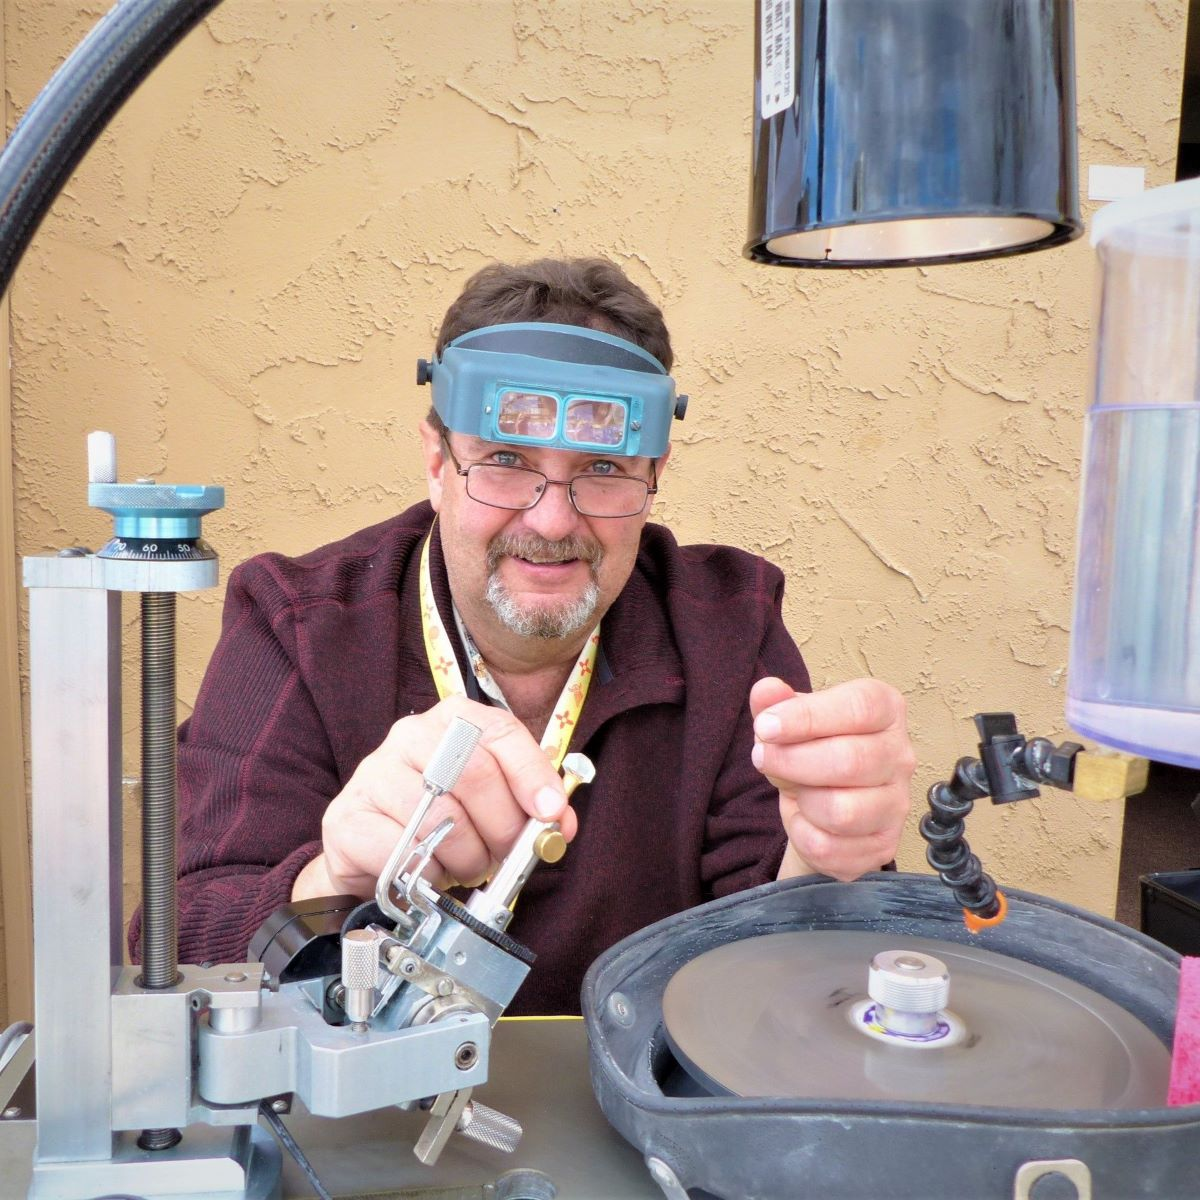 Jeff Theesfeld demonstrates gem faceting at one of the hotel venues in the Tucson gem shows.